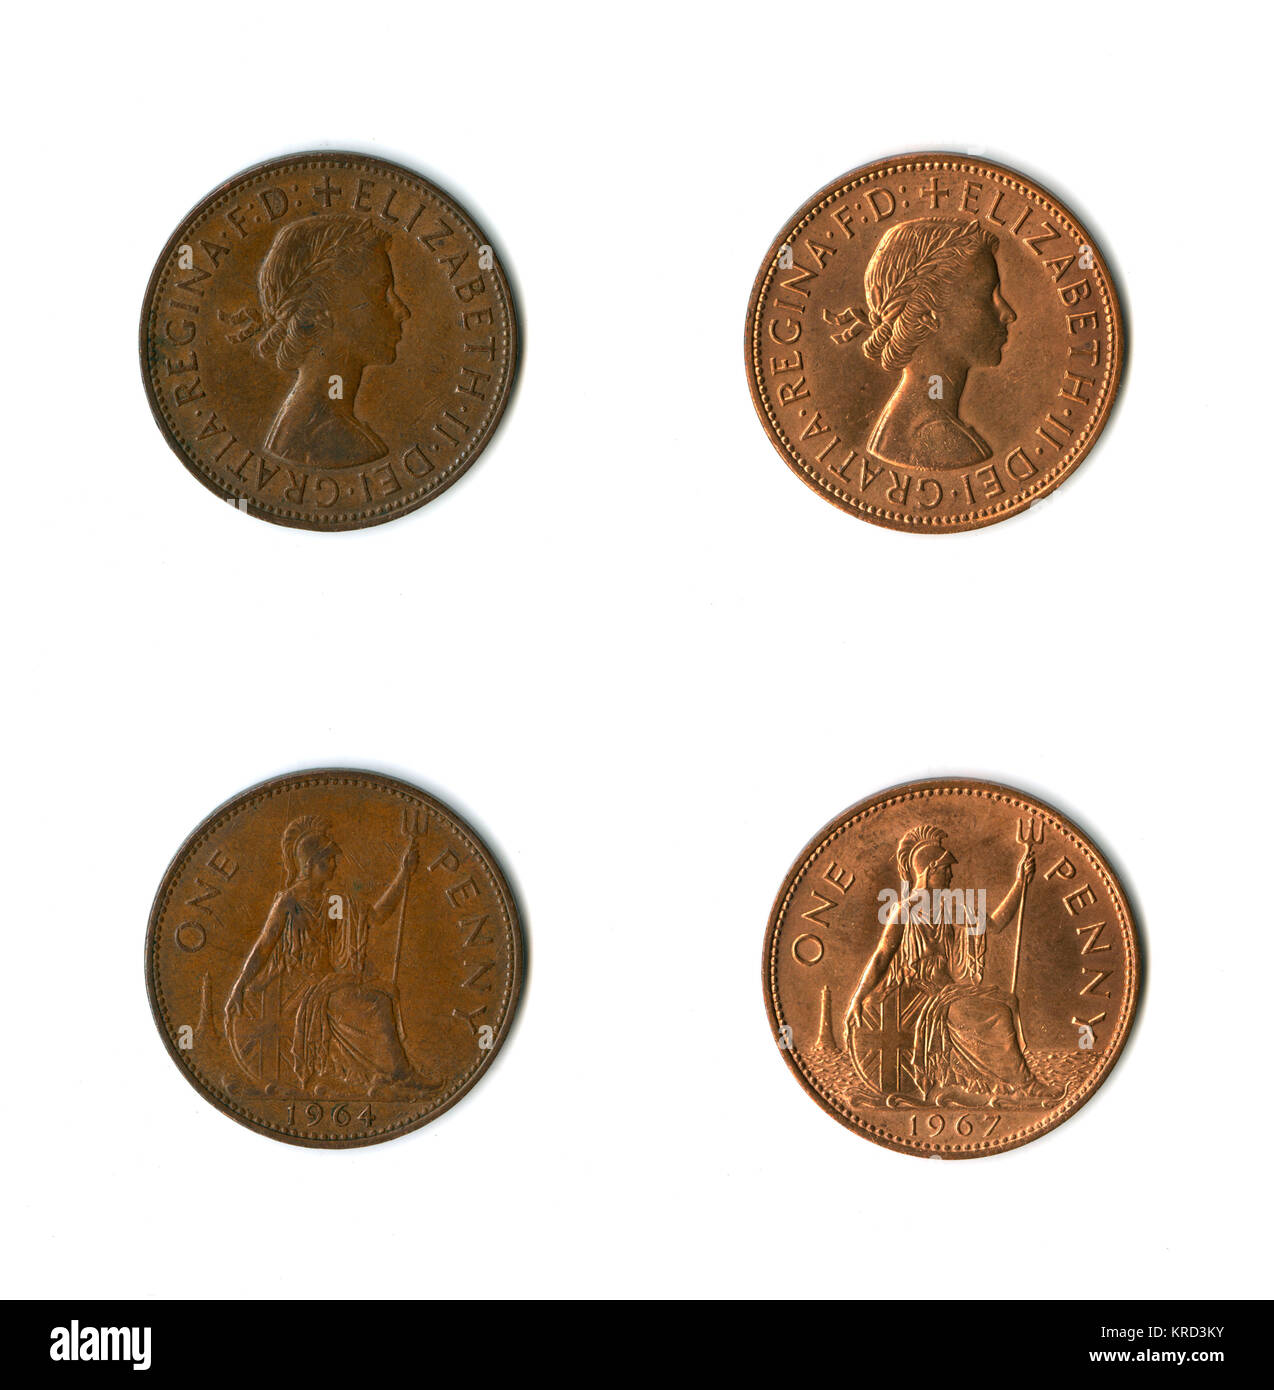 British coins, two Elizabeth II pennies for 1964 and 1967, with